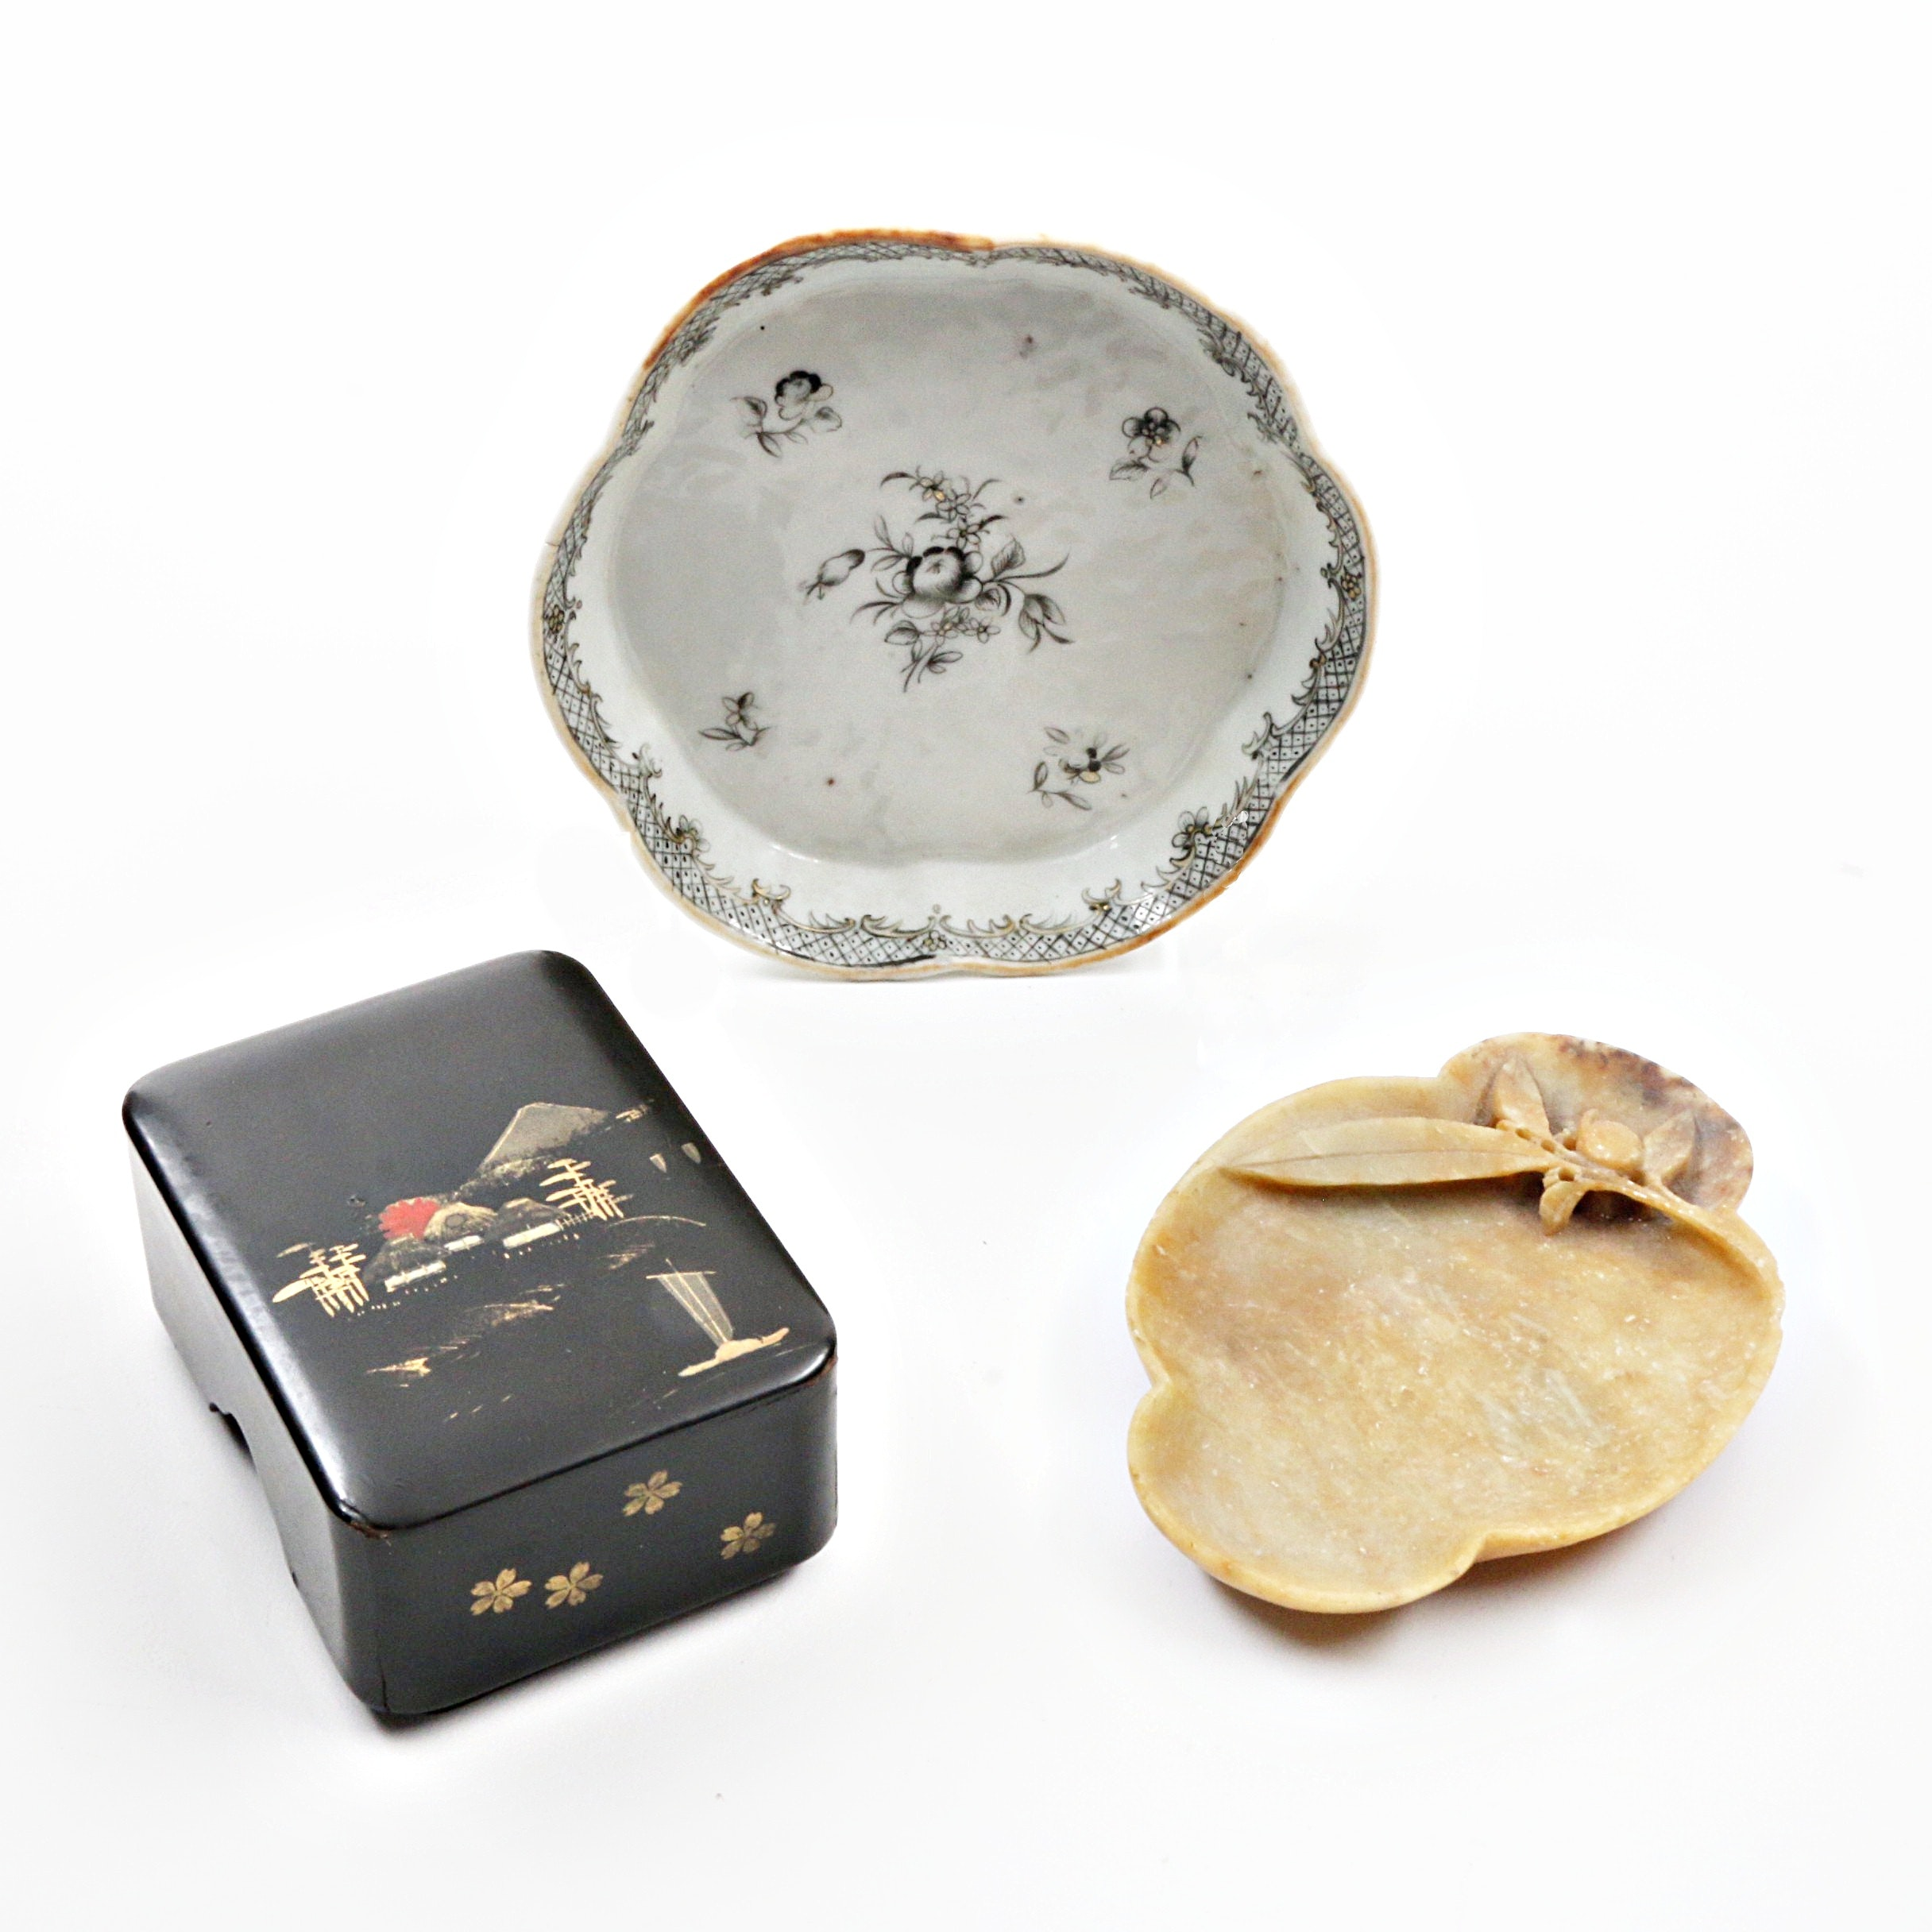 Chinese Export Porcelain Plate, Soapstone Dish and Japanese Lacquered Box